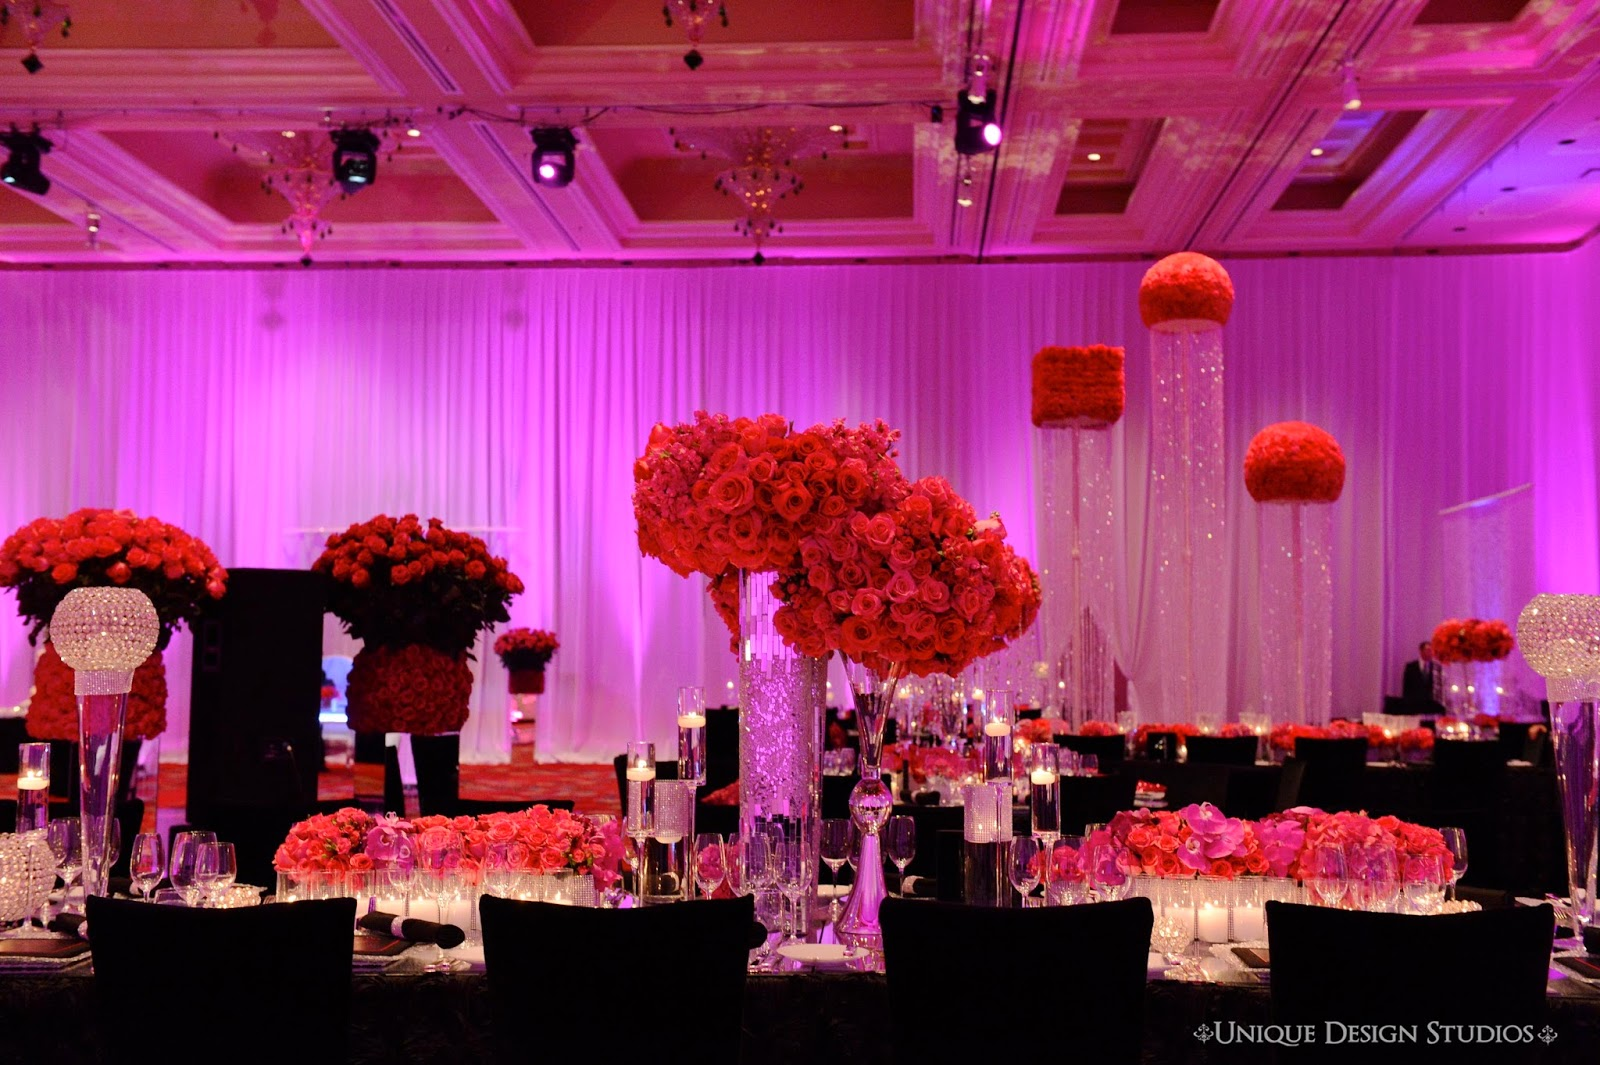 Staying True To The Glitz And Glam Of Las Vegas This Stunning Wedding Reception Design By Tiffany Cook Utilized Perfect Amount Bling Major Color